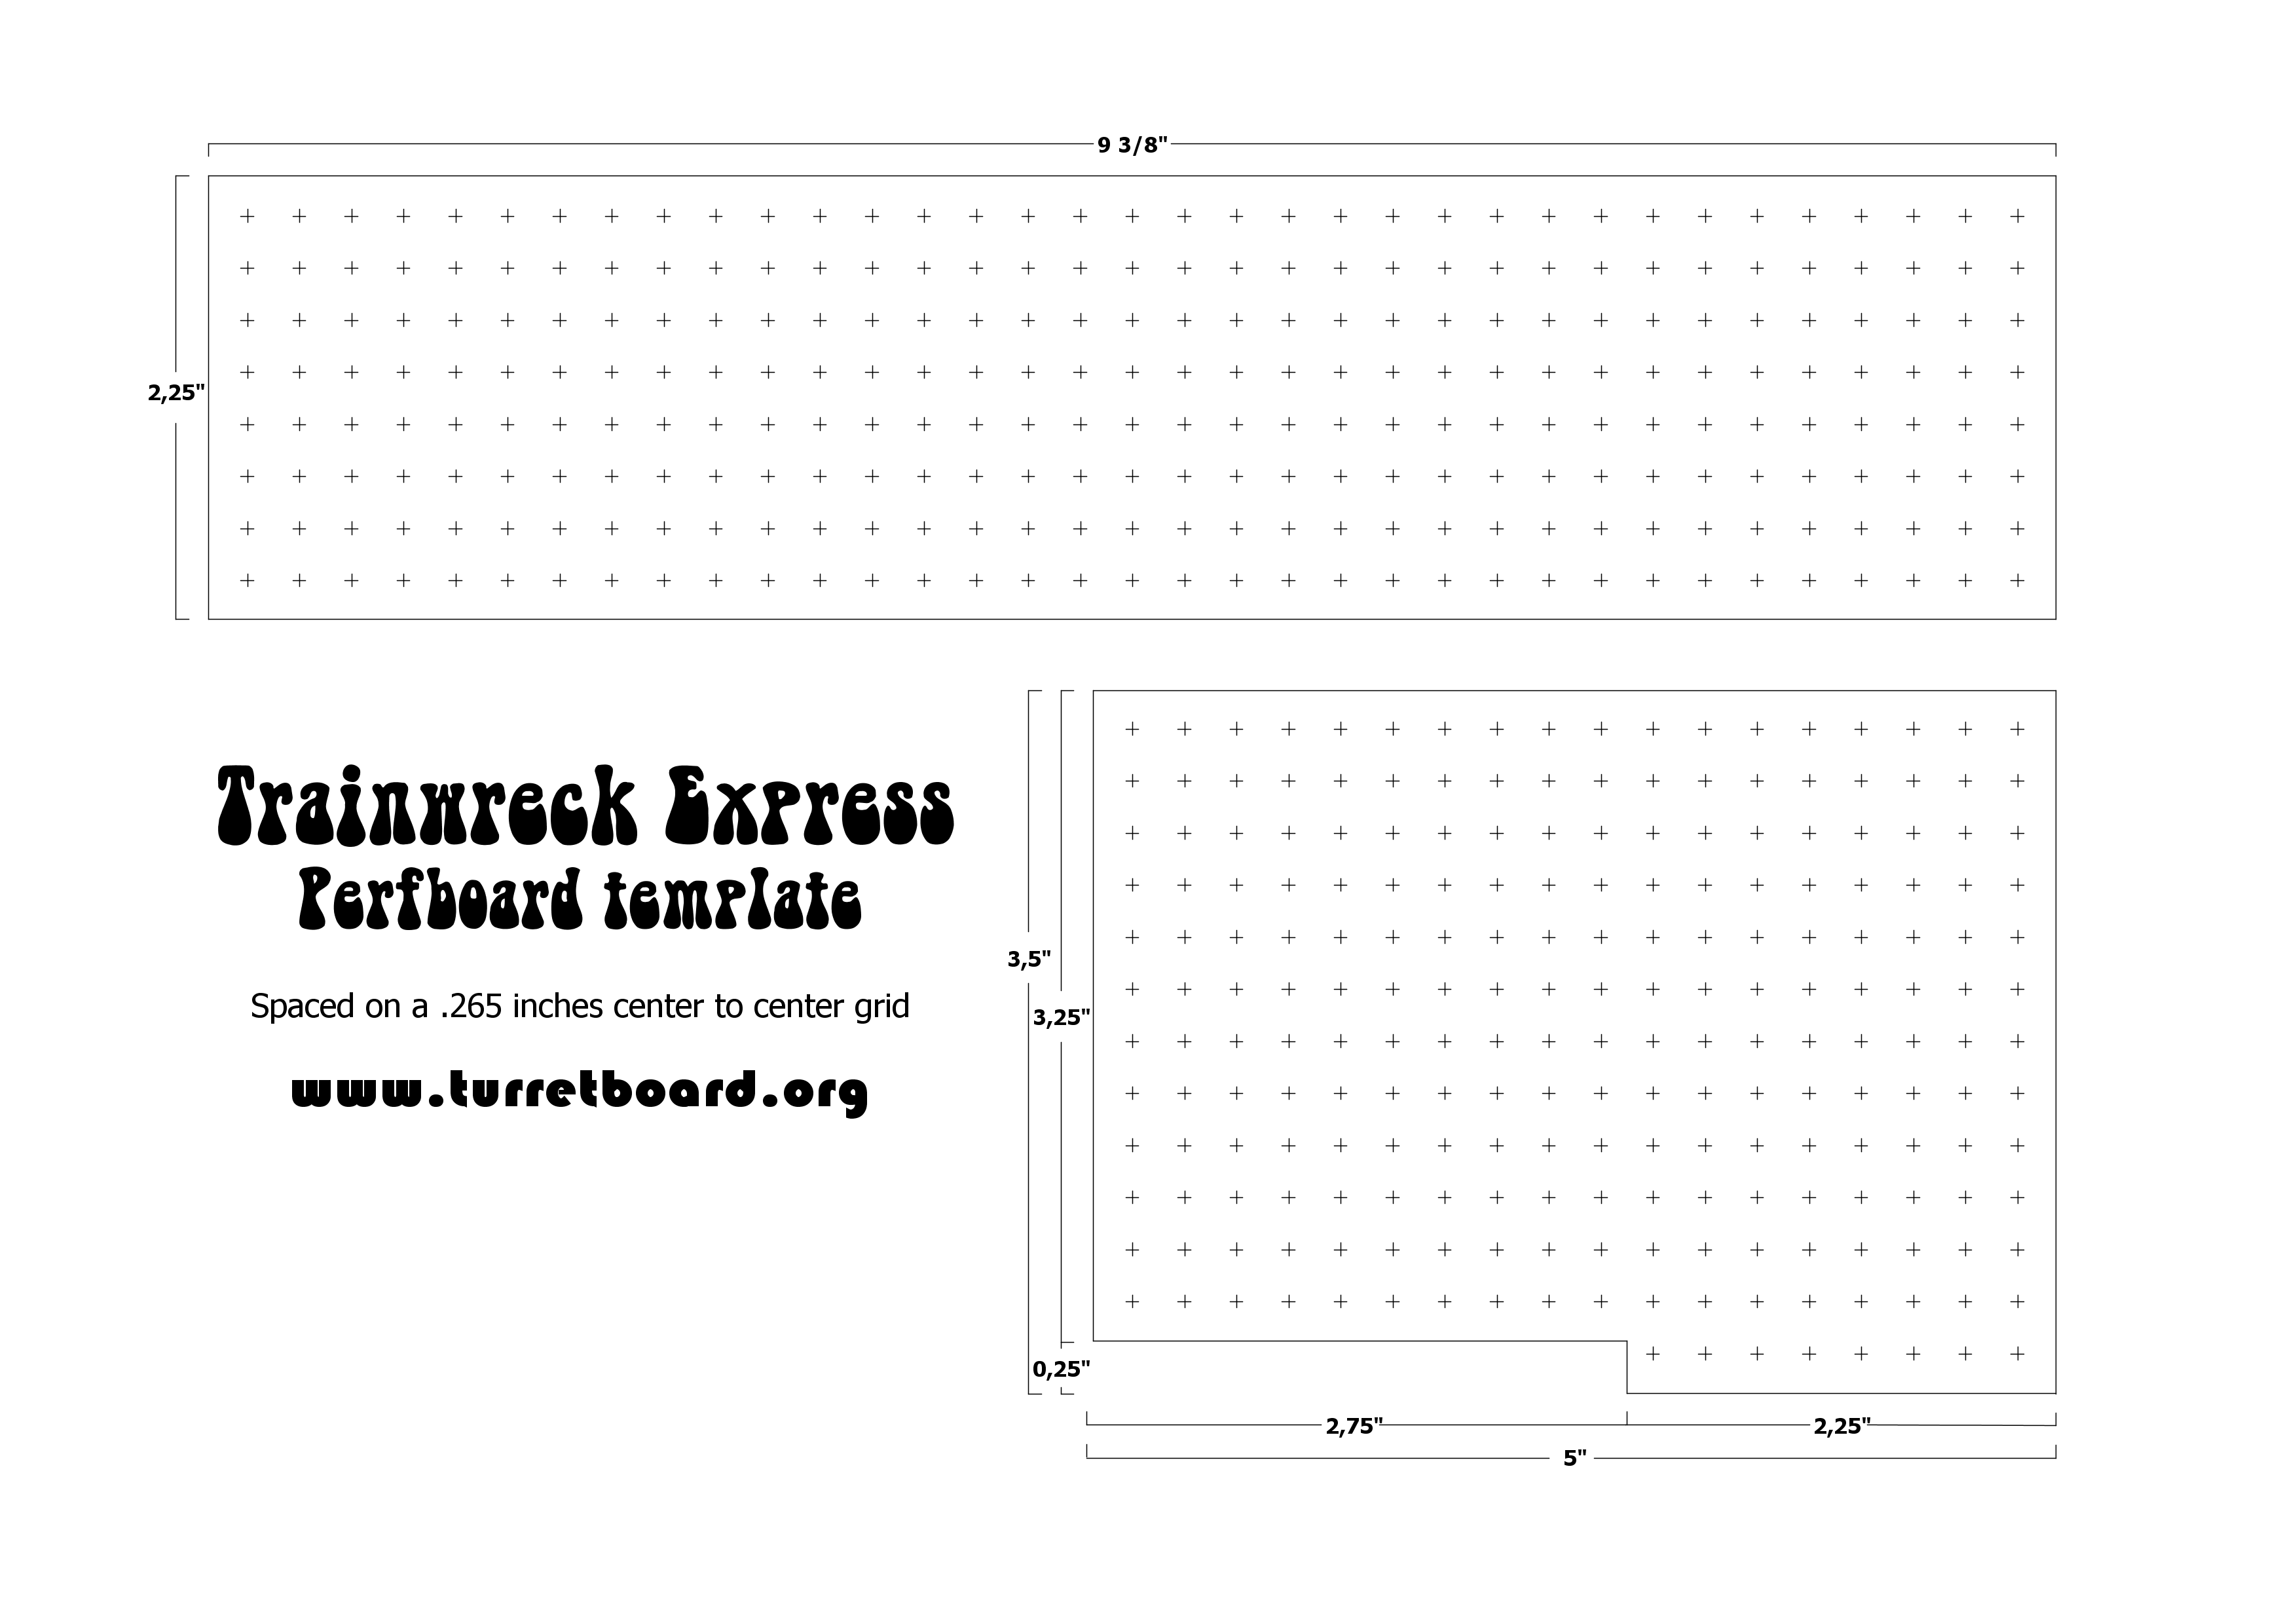 Layout Turretboardorg Ibanez Ts808 Wiring Diagram Blank Amp Board Templates